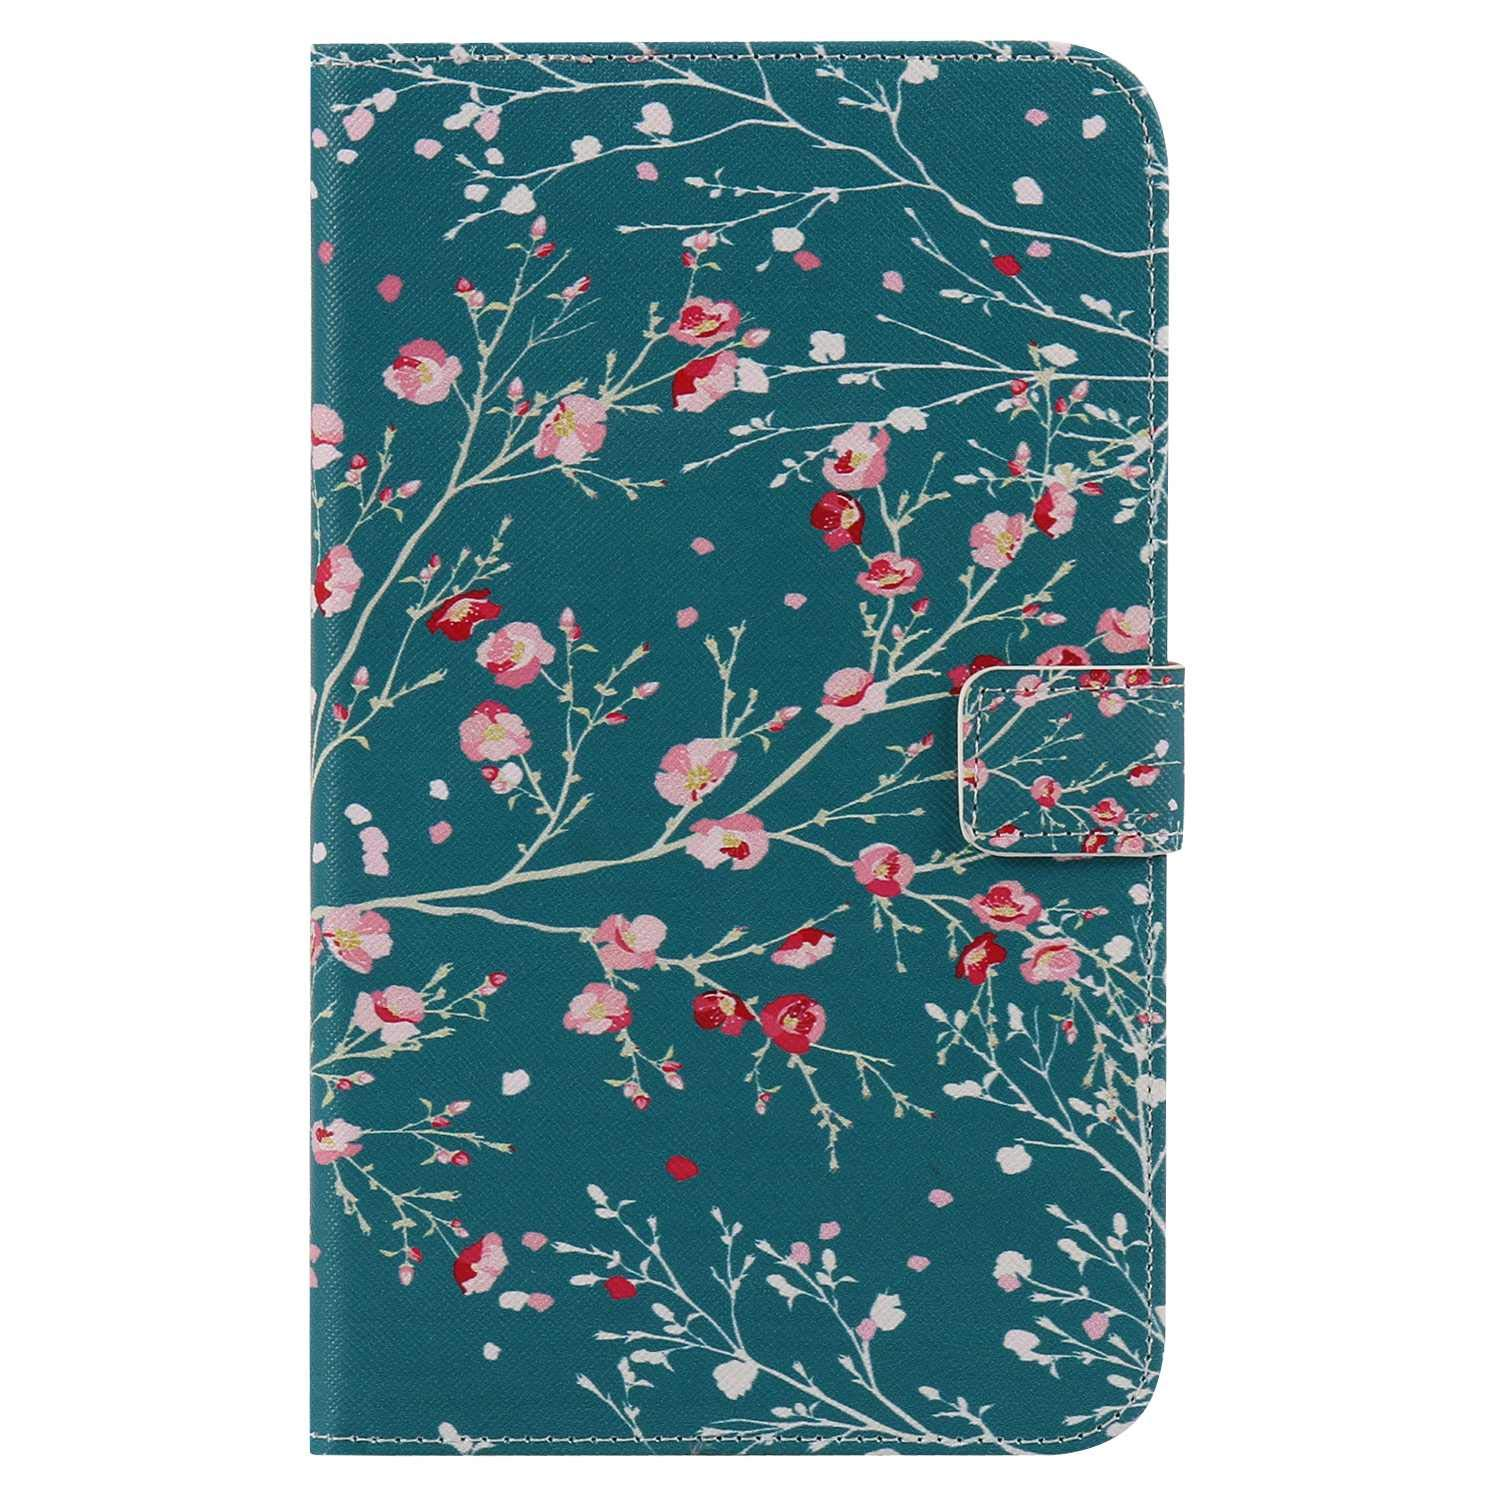 Bear Village Galaxy Tab 4 7.0 Inch Case, Anti Scratch Shell with Adjust Stand, Colorful Design Leather Stand Case for Samsung Galaxy Tab 4 7.0 Inch, Flower by Bear Village